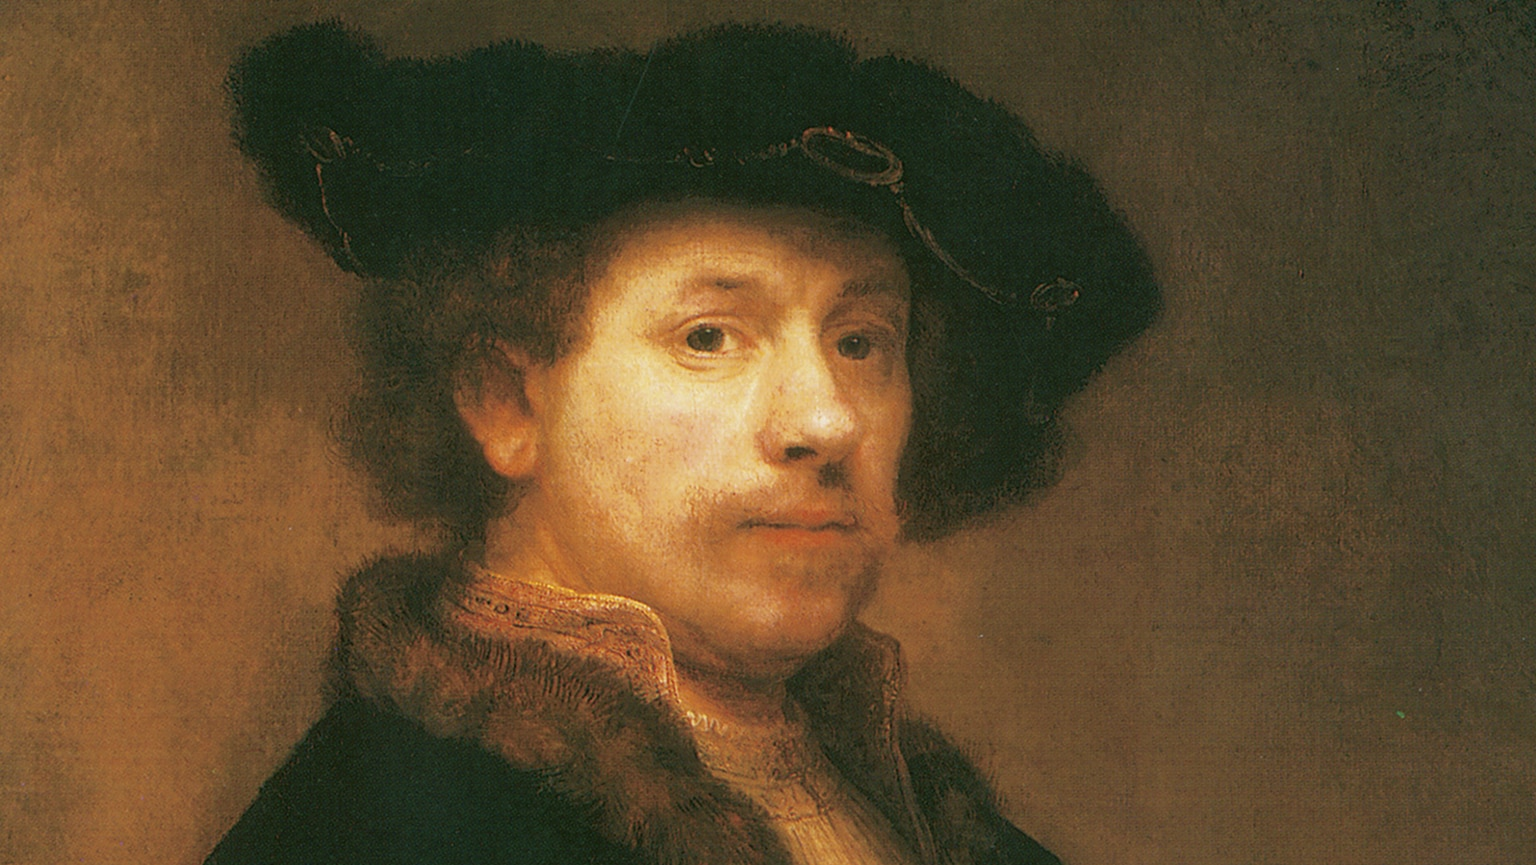 a short biography of rembrandt one of the most influential realist painters Rembrandt (1606-1669) dutch master one of the greatest painters, admired for his vivid realism one of the greatest painters, admired for his vivid realism famous paintings include the jewish bride and the storm of the sea of galilee.